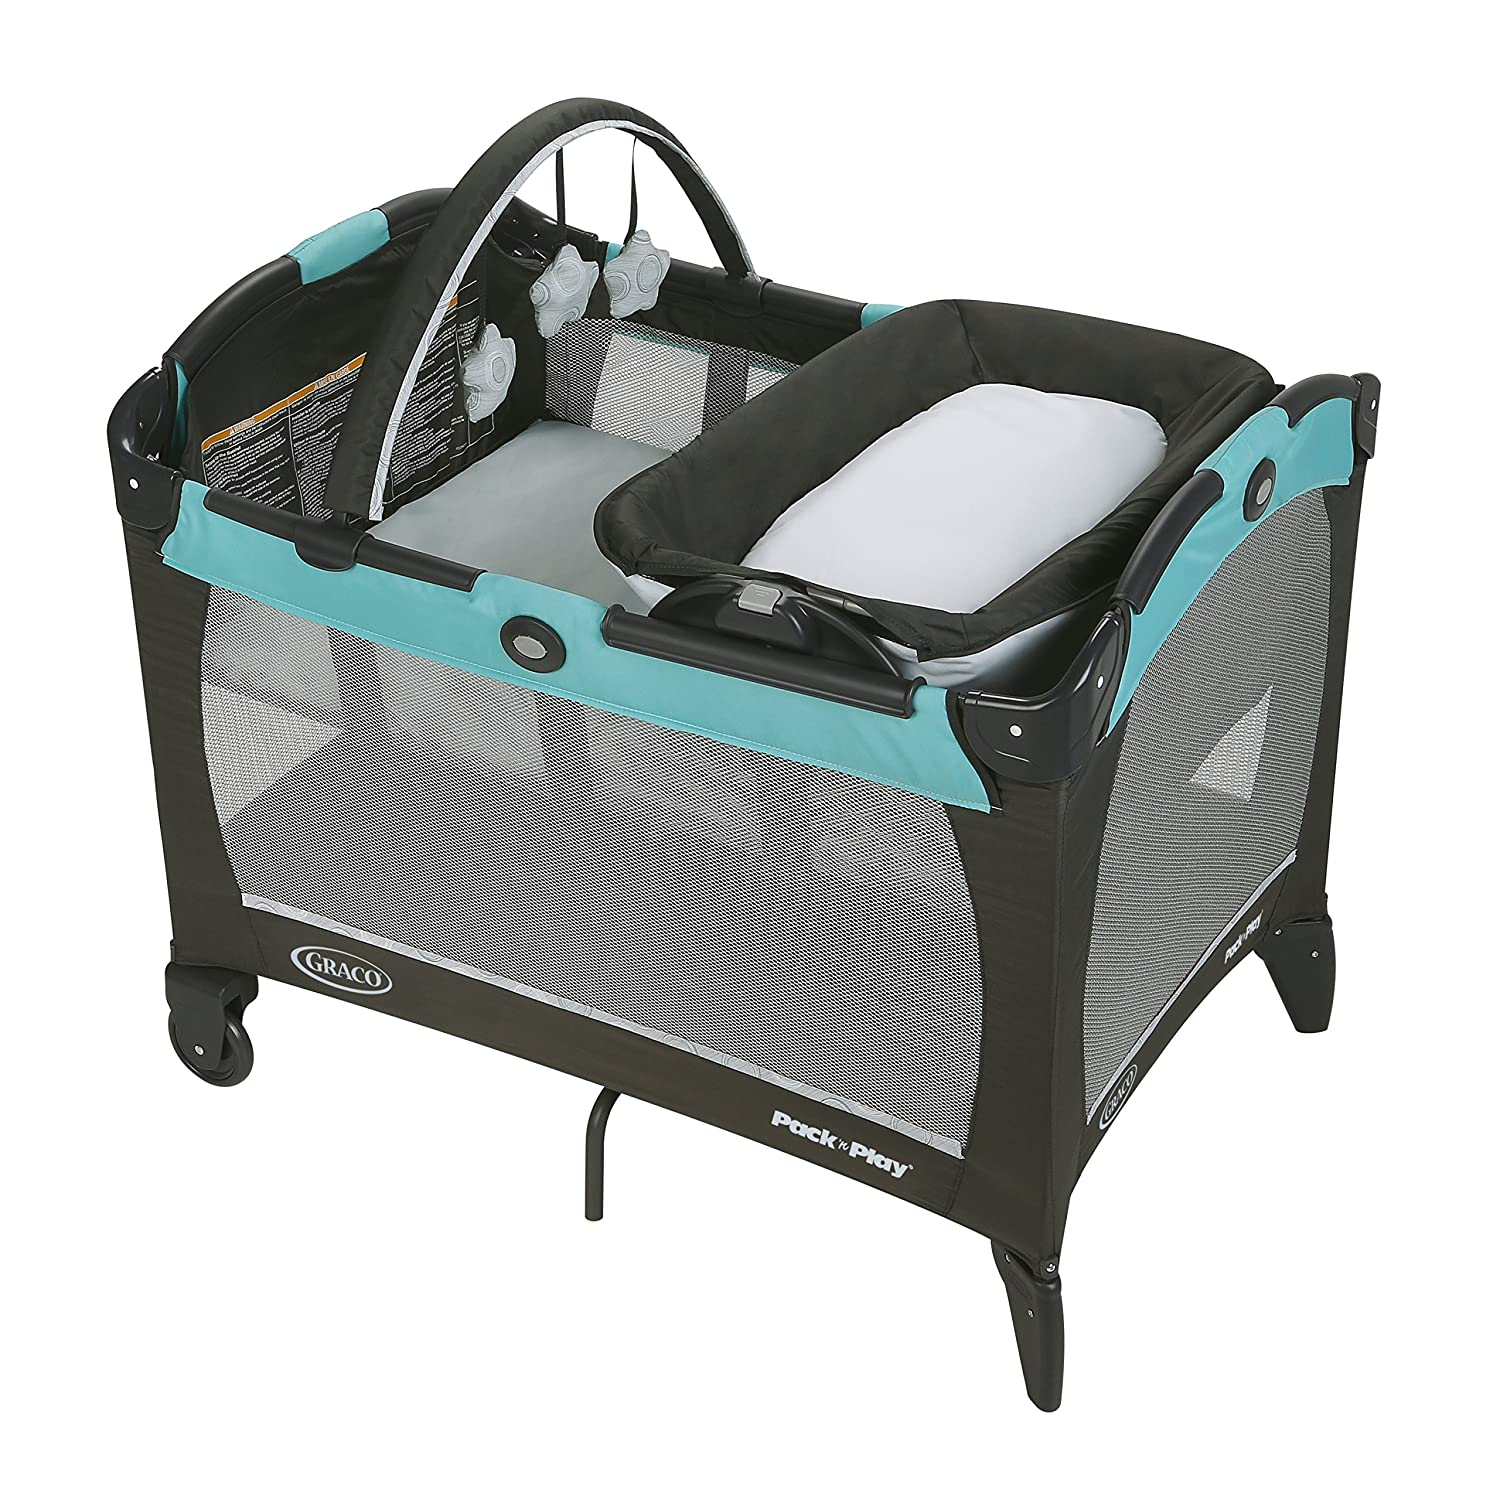 Graco Pack 'n Play with Reversible Lounger & Changer, Tenley 2013678